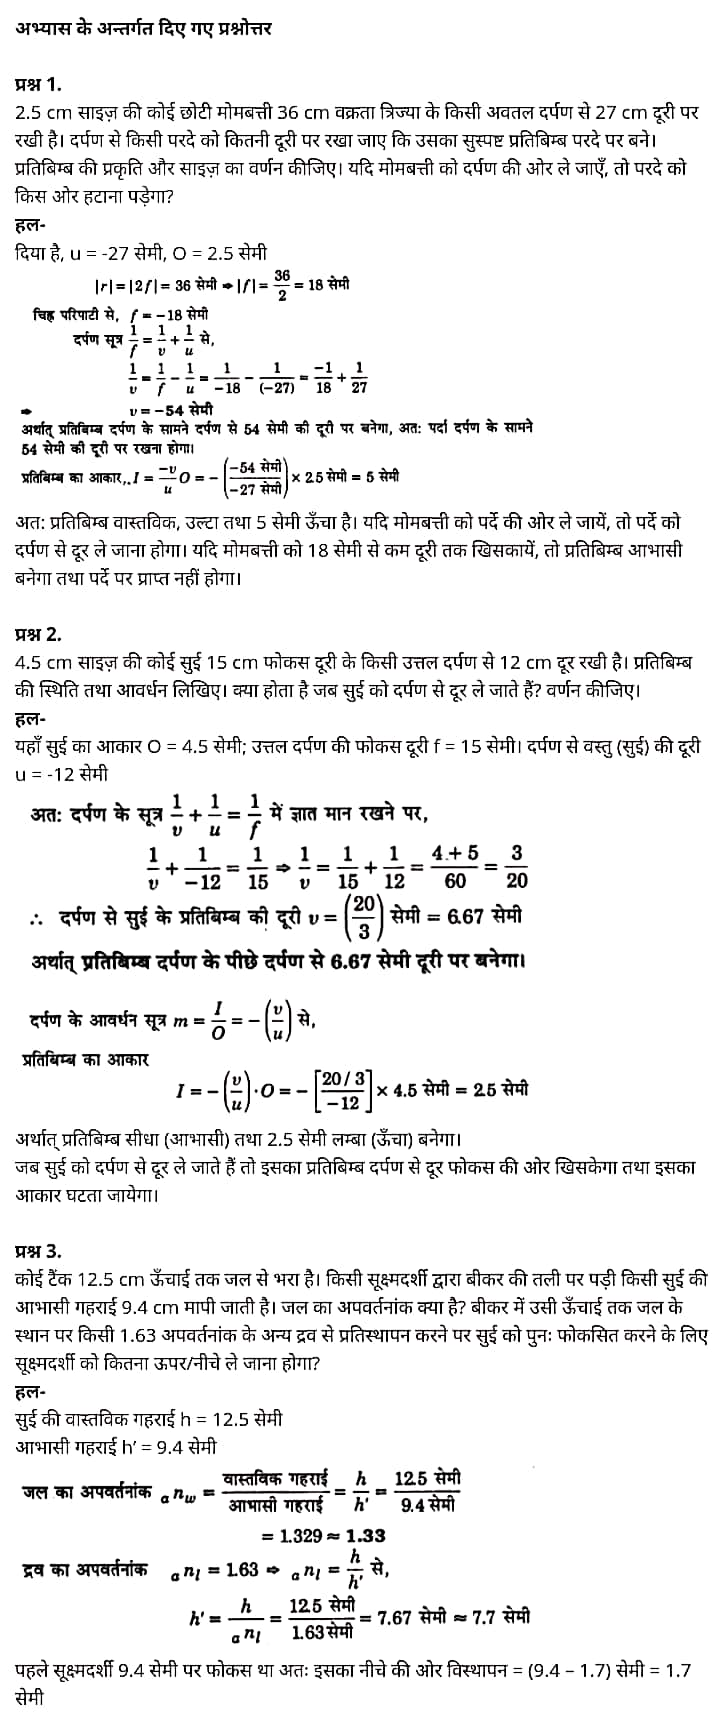 UP Board Solutions for Class 12 Physics Chapter 9 Ray Optics and Optical Instruments